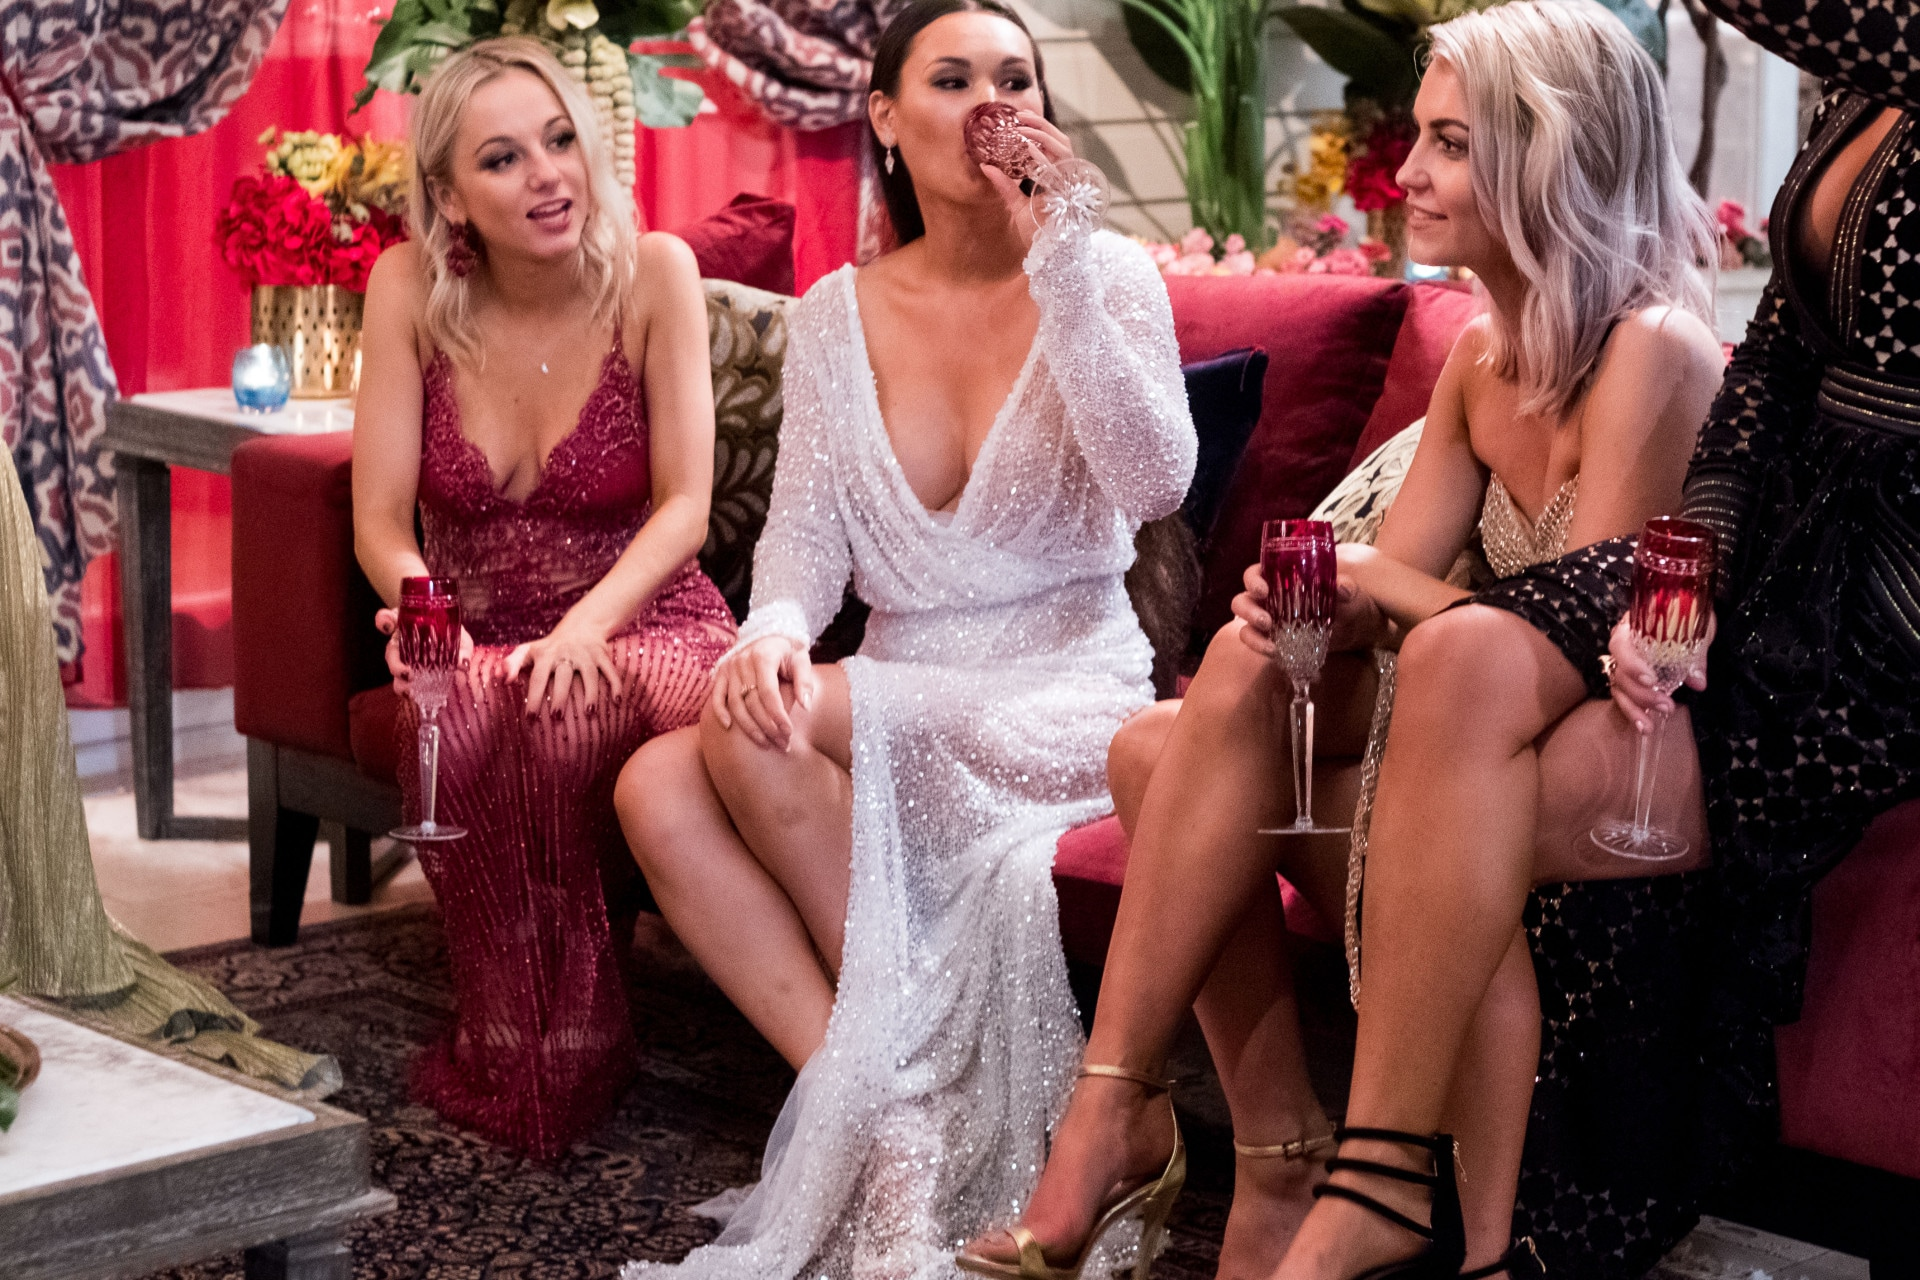 Where to buy those iconic Bachelor champagne glasses